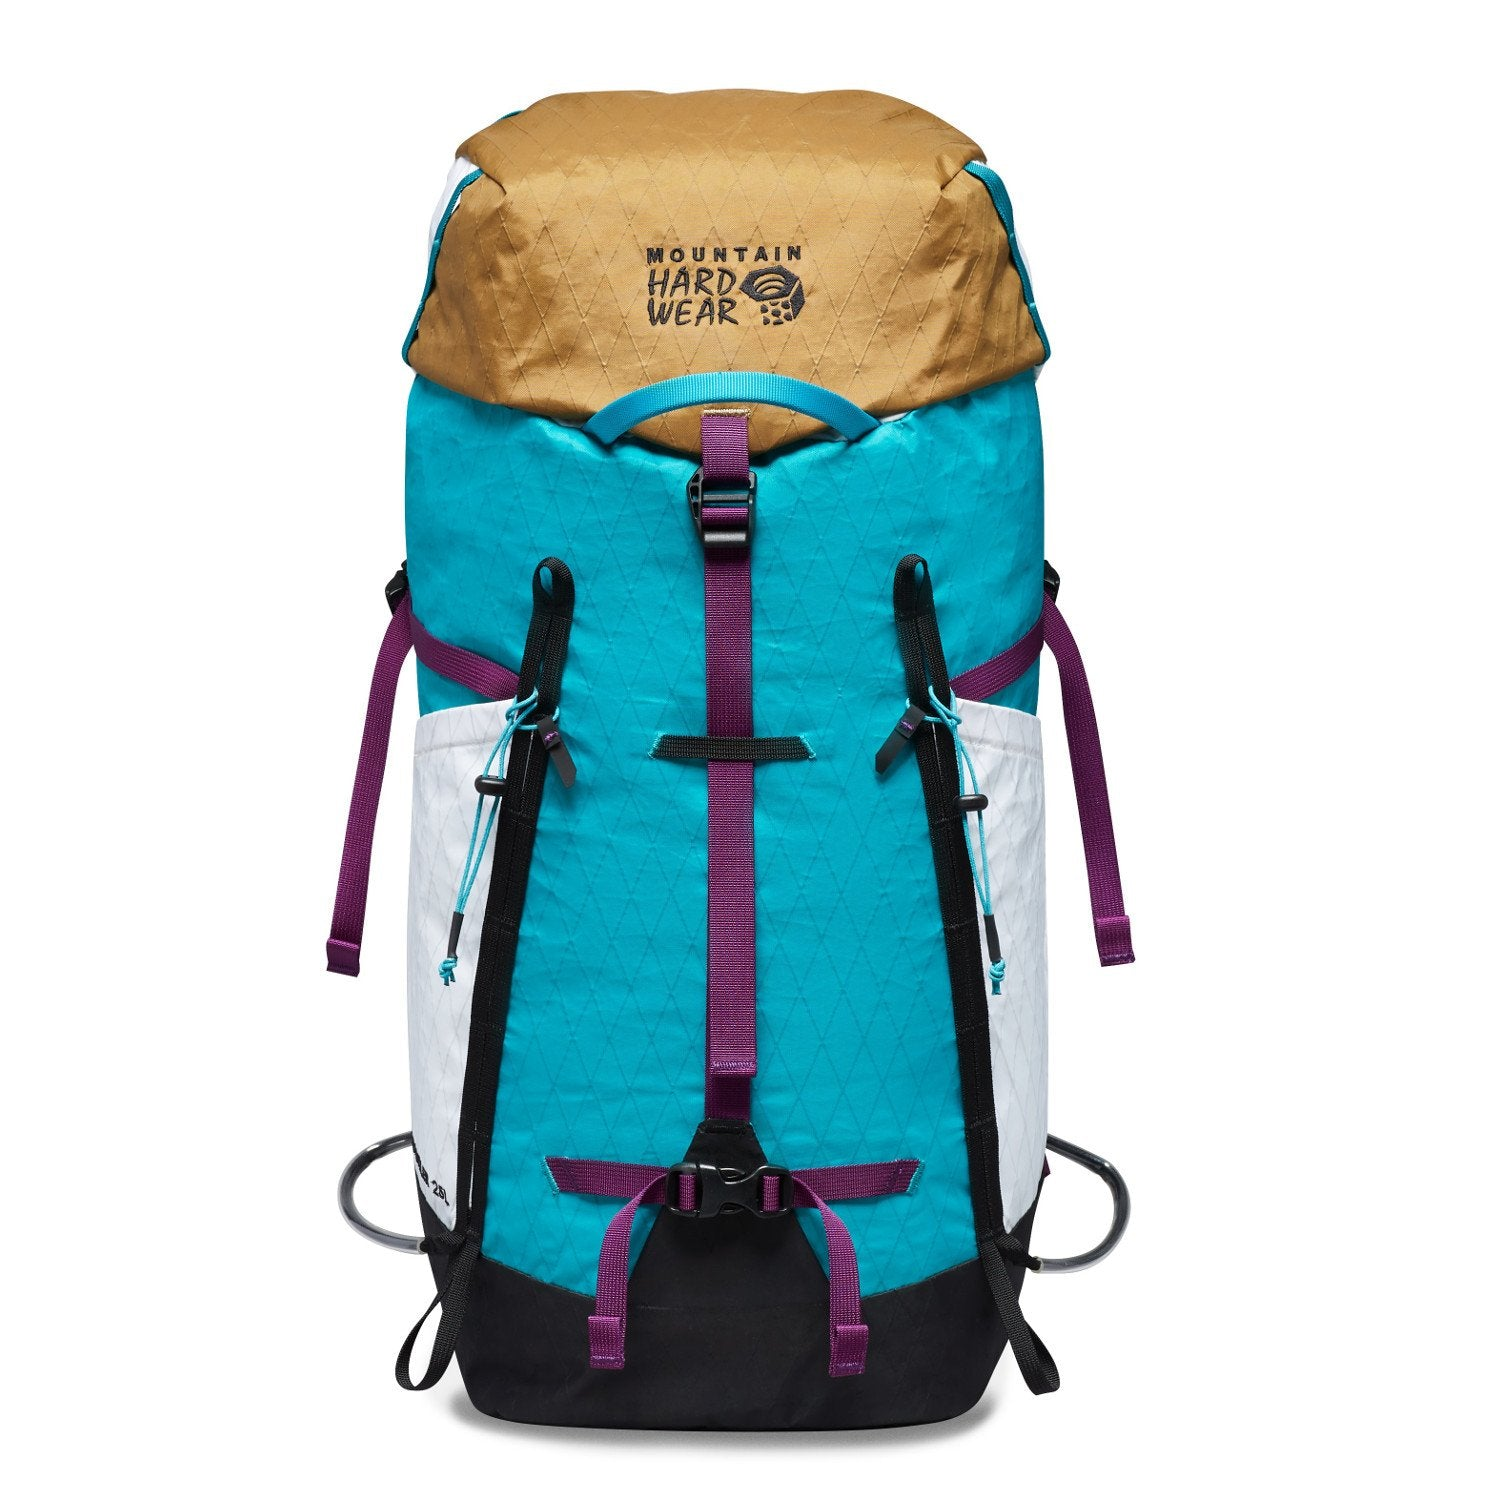 Mountain Hardwear Scrambler 25 rucksack, front view in Gold, Teal, White & Purple colours